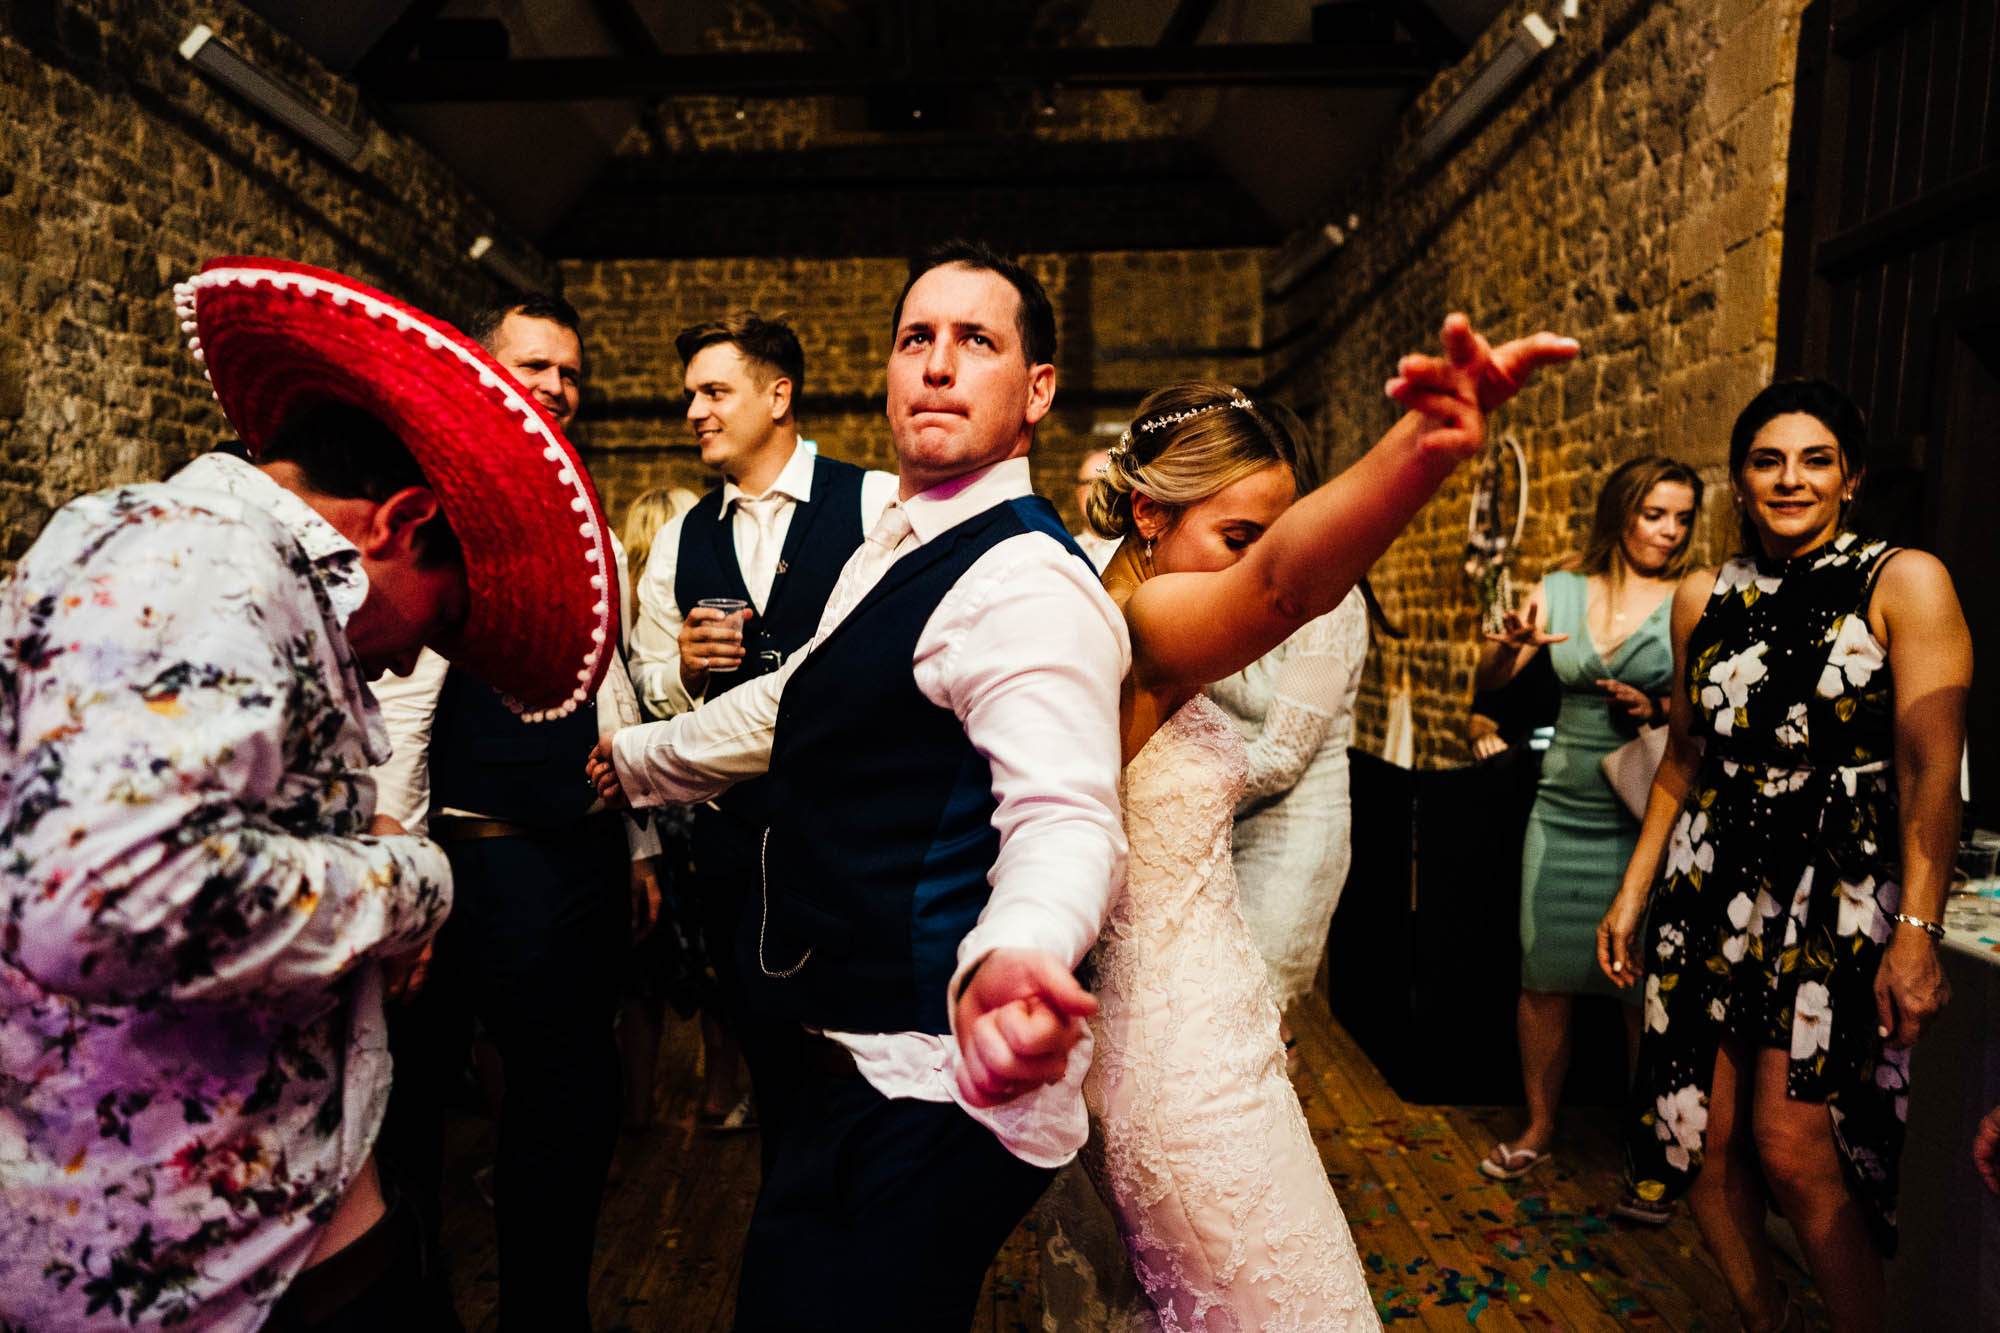 wedding-at-the-barns-at-hunsbury-hill-87